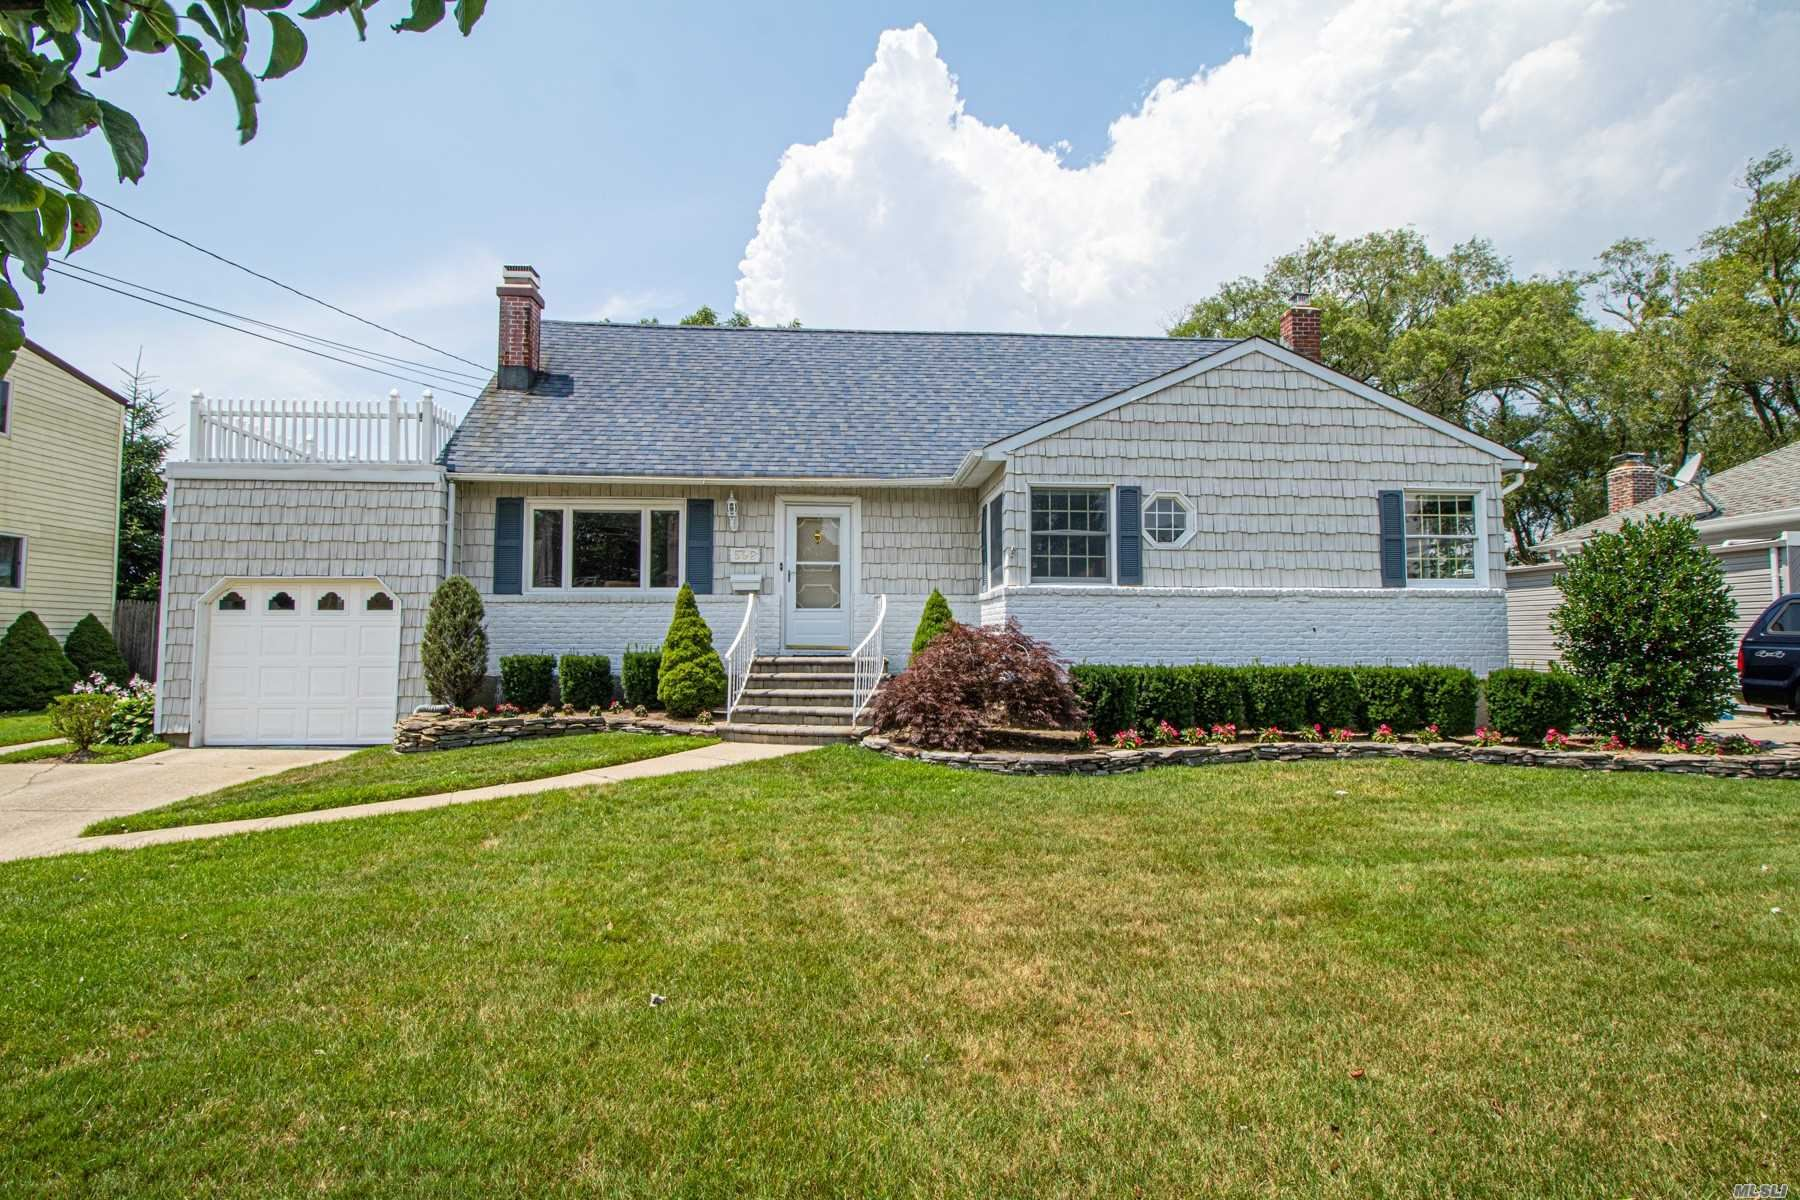 592 Center Dyre Ave, West Islip, NY 11795 - MLS#: 3232520